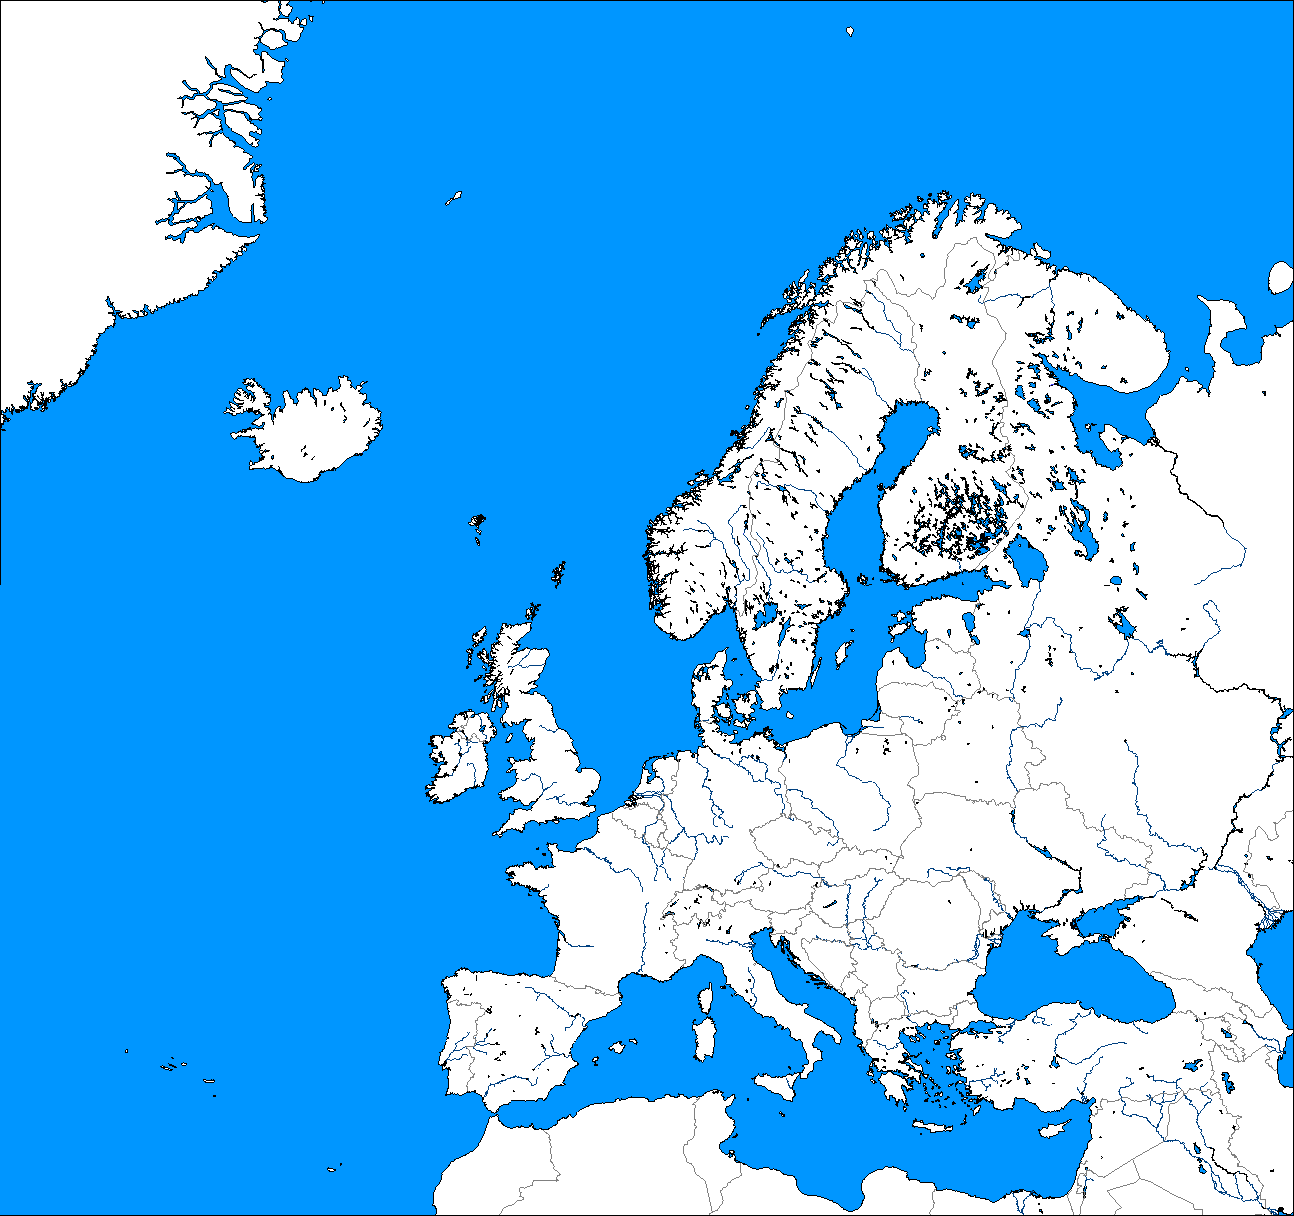 Blank Europe 3 with rivers.PNG